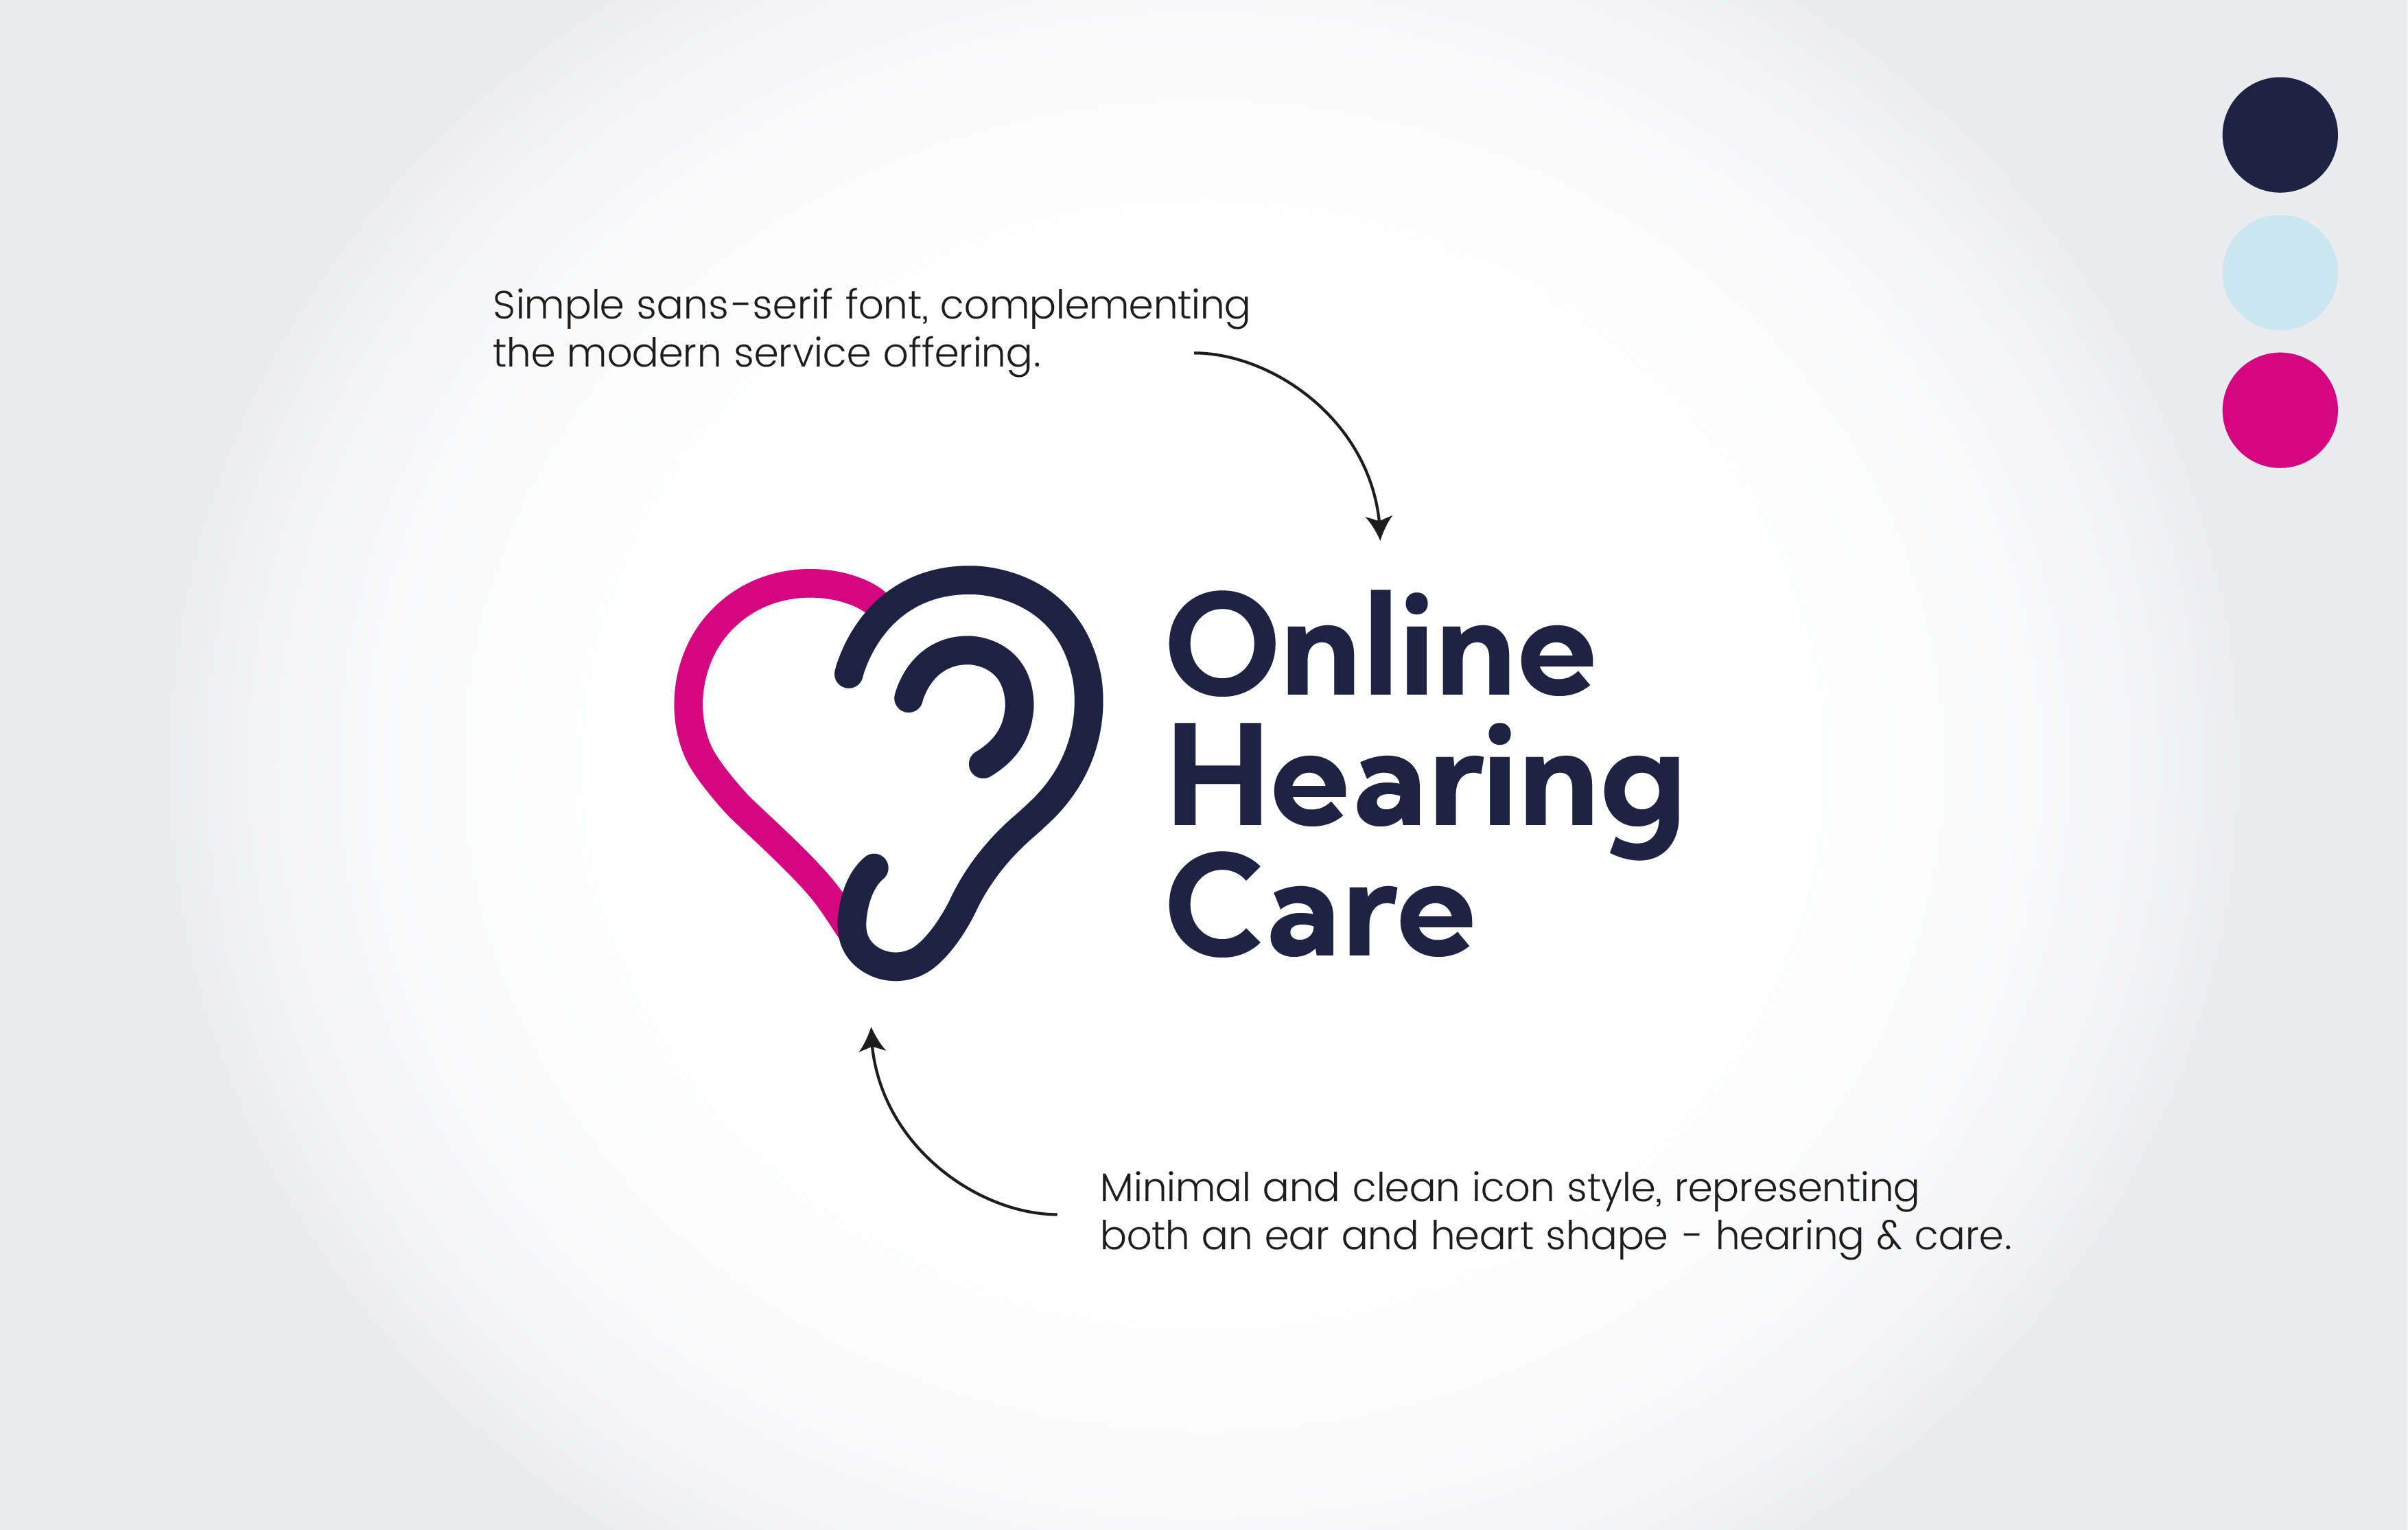 online hearing care logo explanation